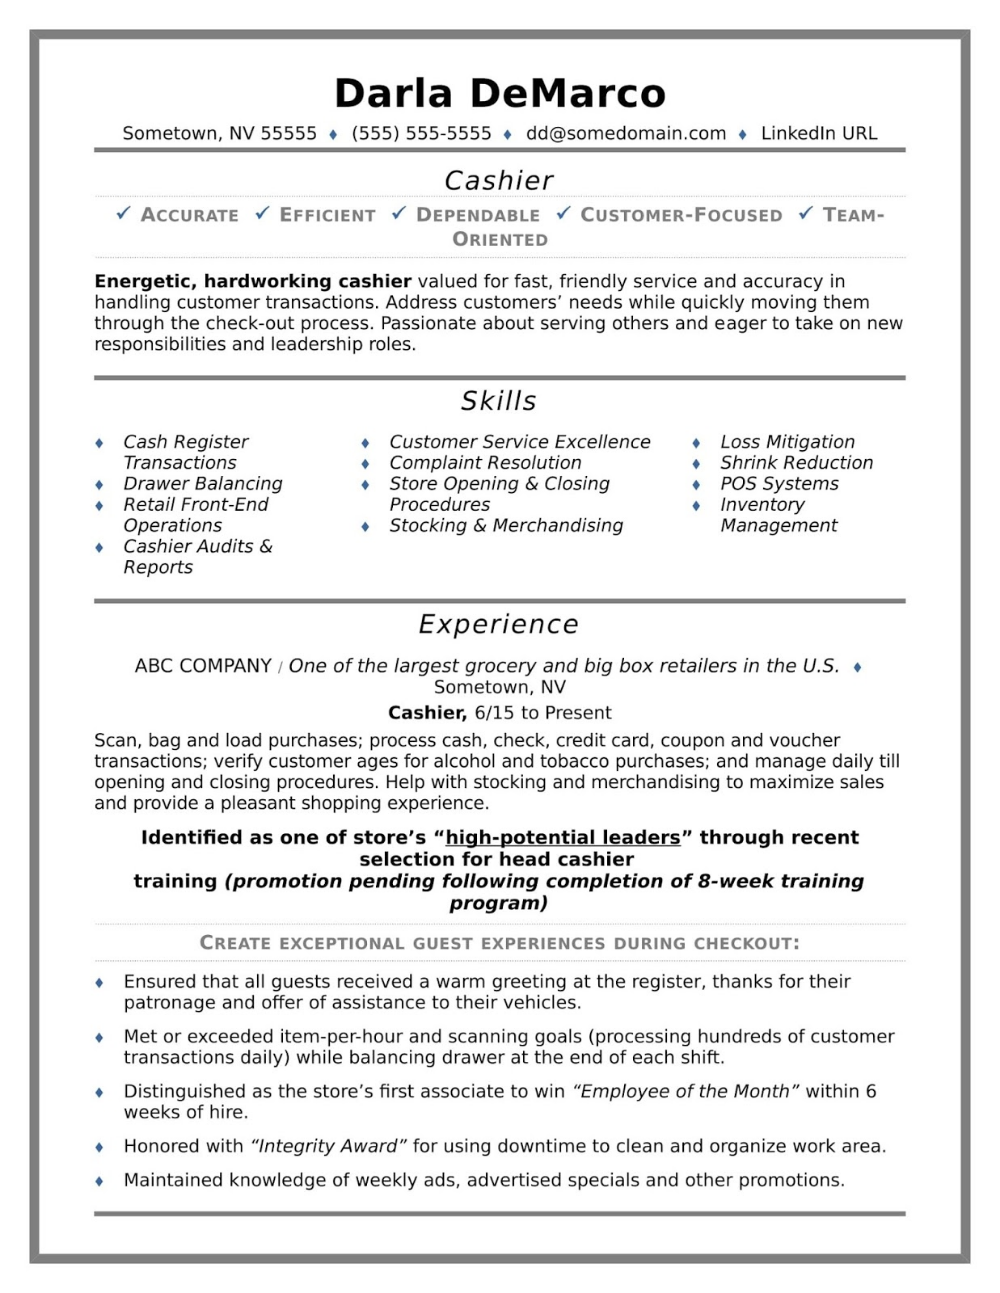 Grocery Store Cashier Resume Grocery Store Cashier Resume Description Grocery Store Cashier Resume Objectiv Job Resume Examples Resume Skills Resume Examples